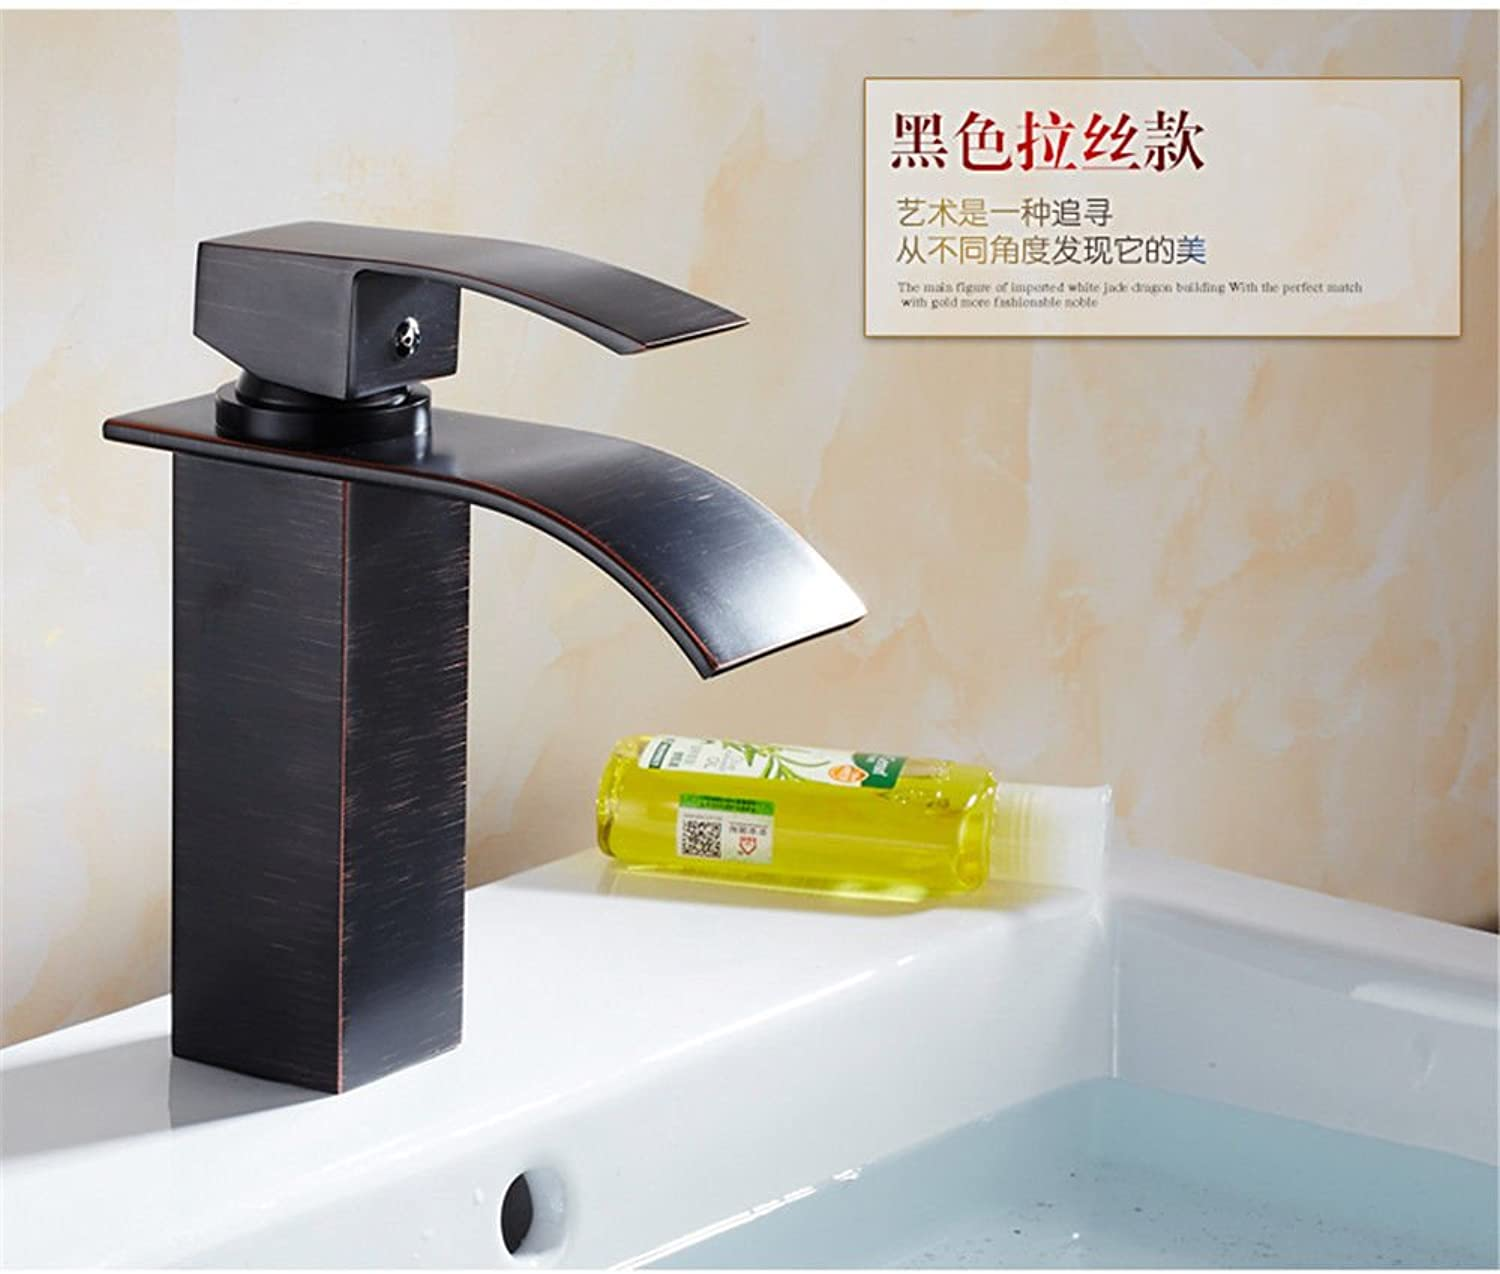 Lalaky Taps Faucet Kitchen Mixer Sink Waterfall Bathroom Mixer Basin Mixer Tap for Kitchen Bathroom and Washroom Copper Hot and Cold Jade golden Waterfall